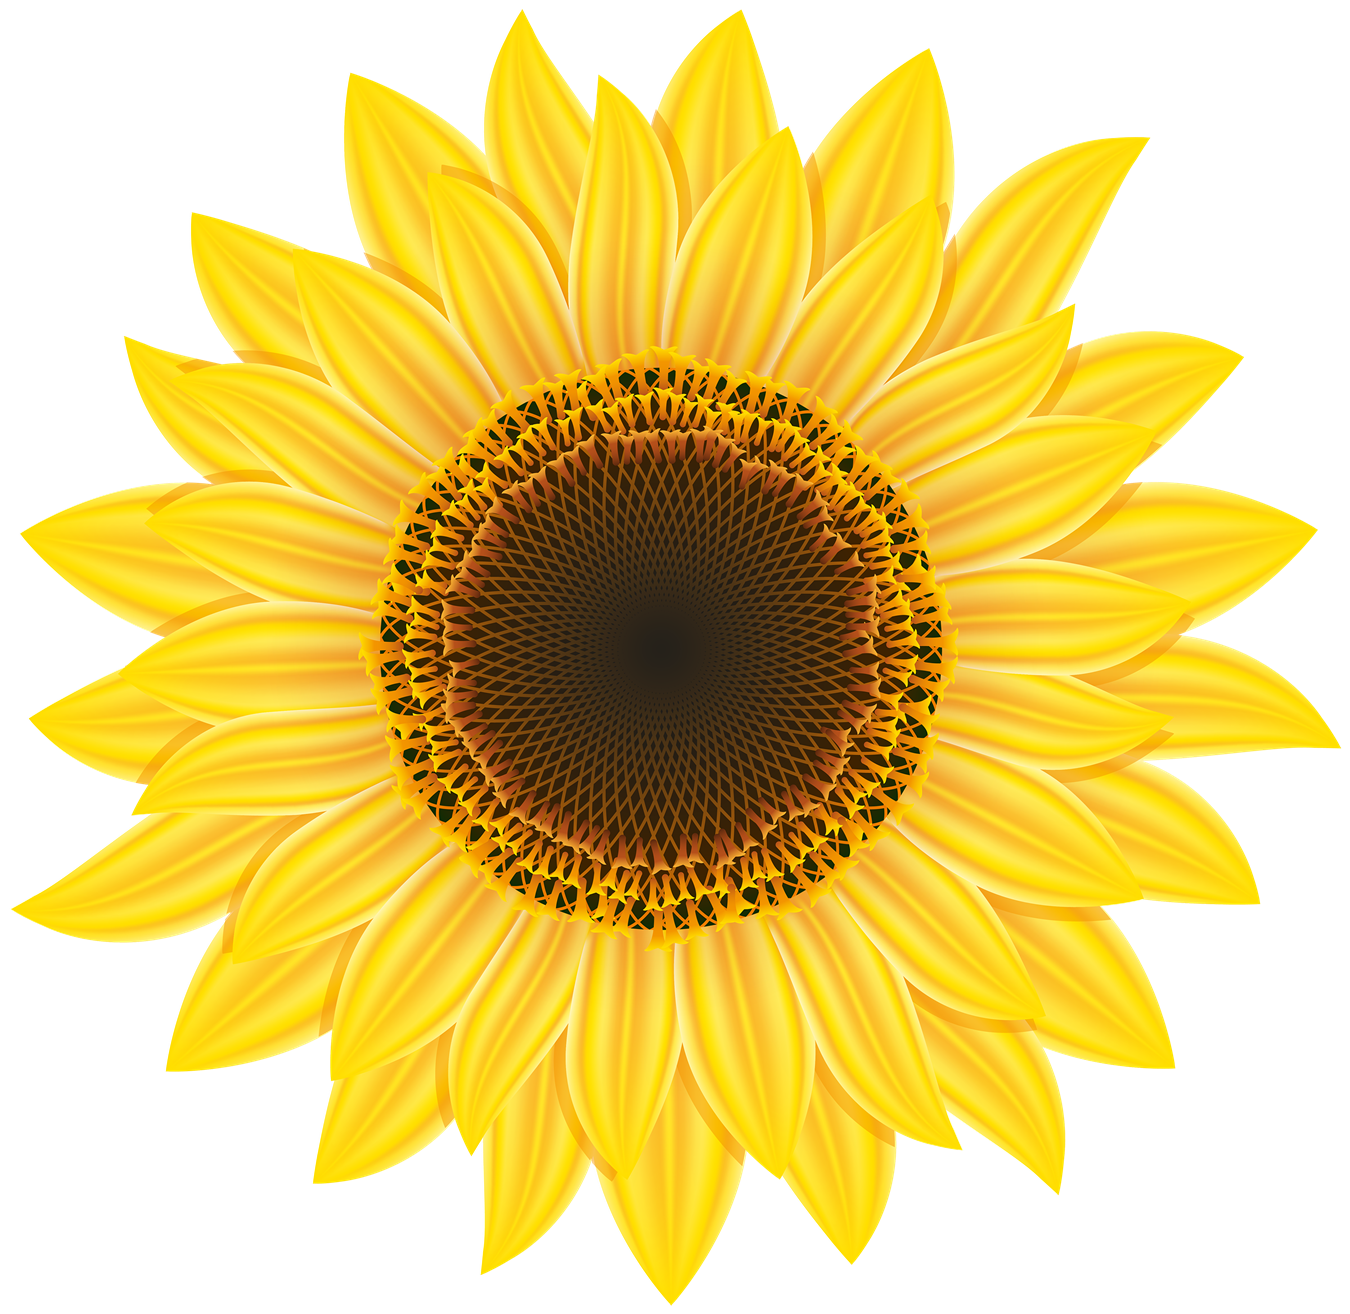 PNG Sunflower - 58129